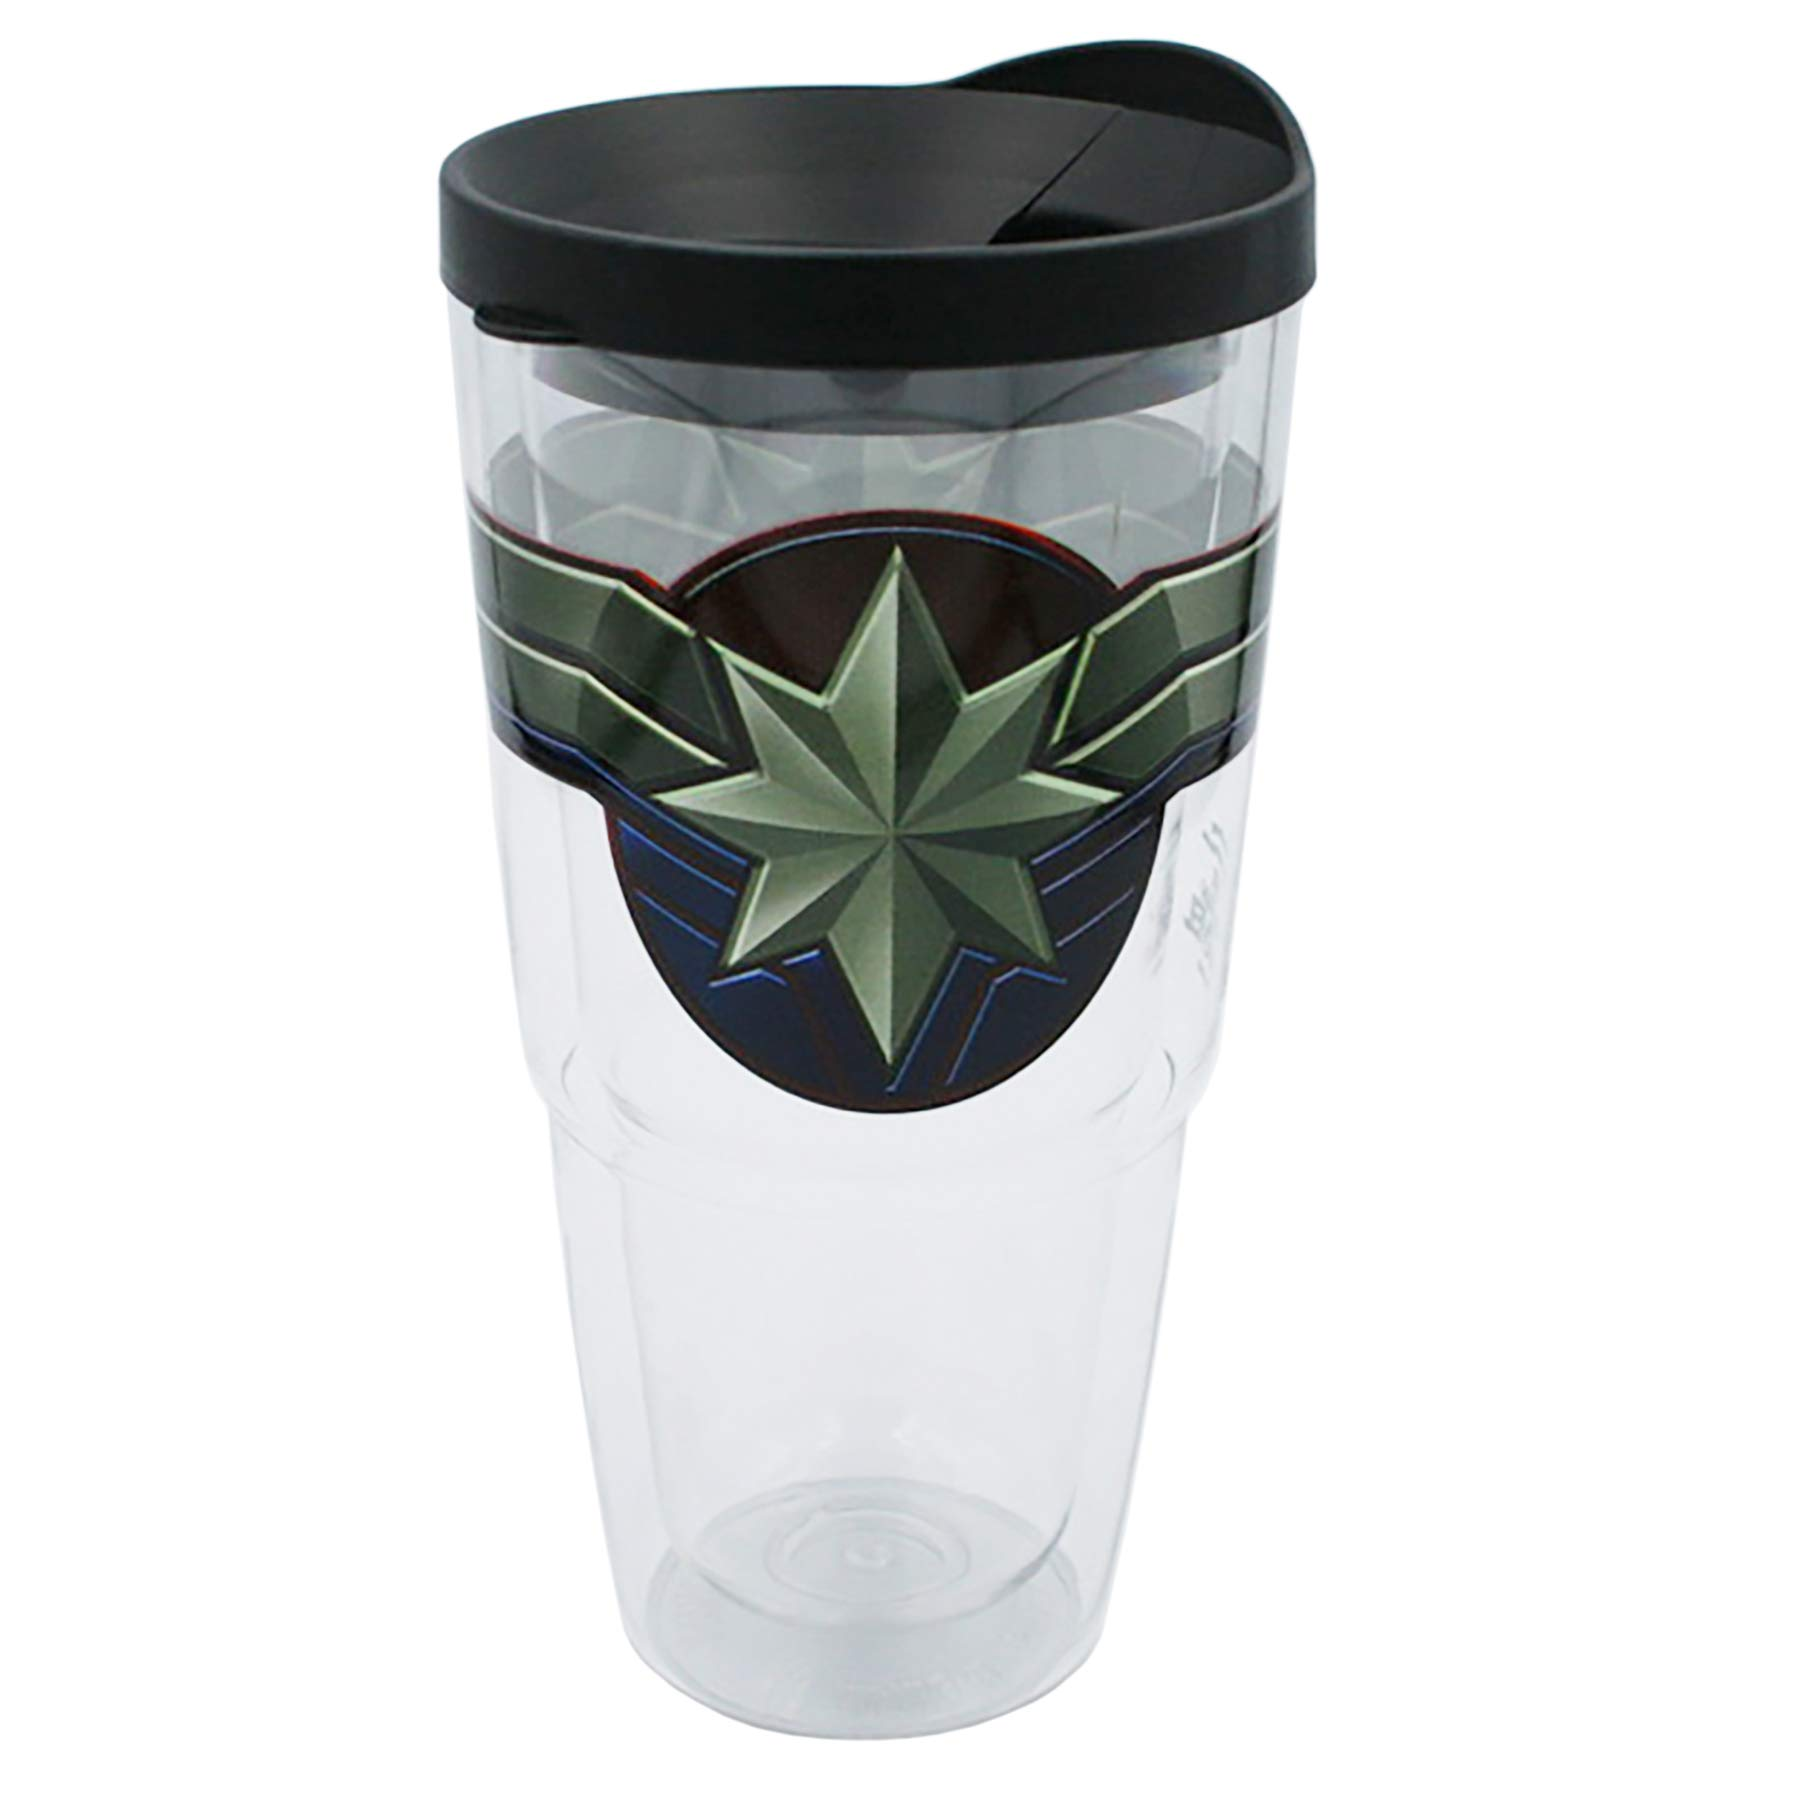 Marvel Travel Tumbler Stainless Steel Portable Beverage Tumbler 16 oz Spill Proof /& Insulated Double Walled Tumbler,/ Captain Marvel Female Hero